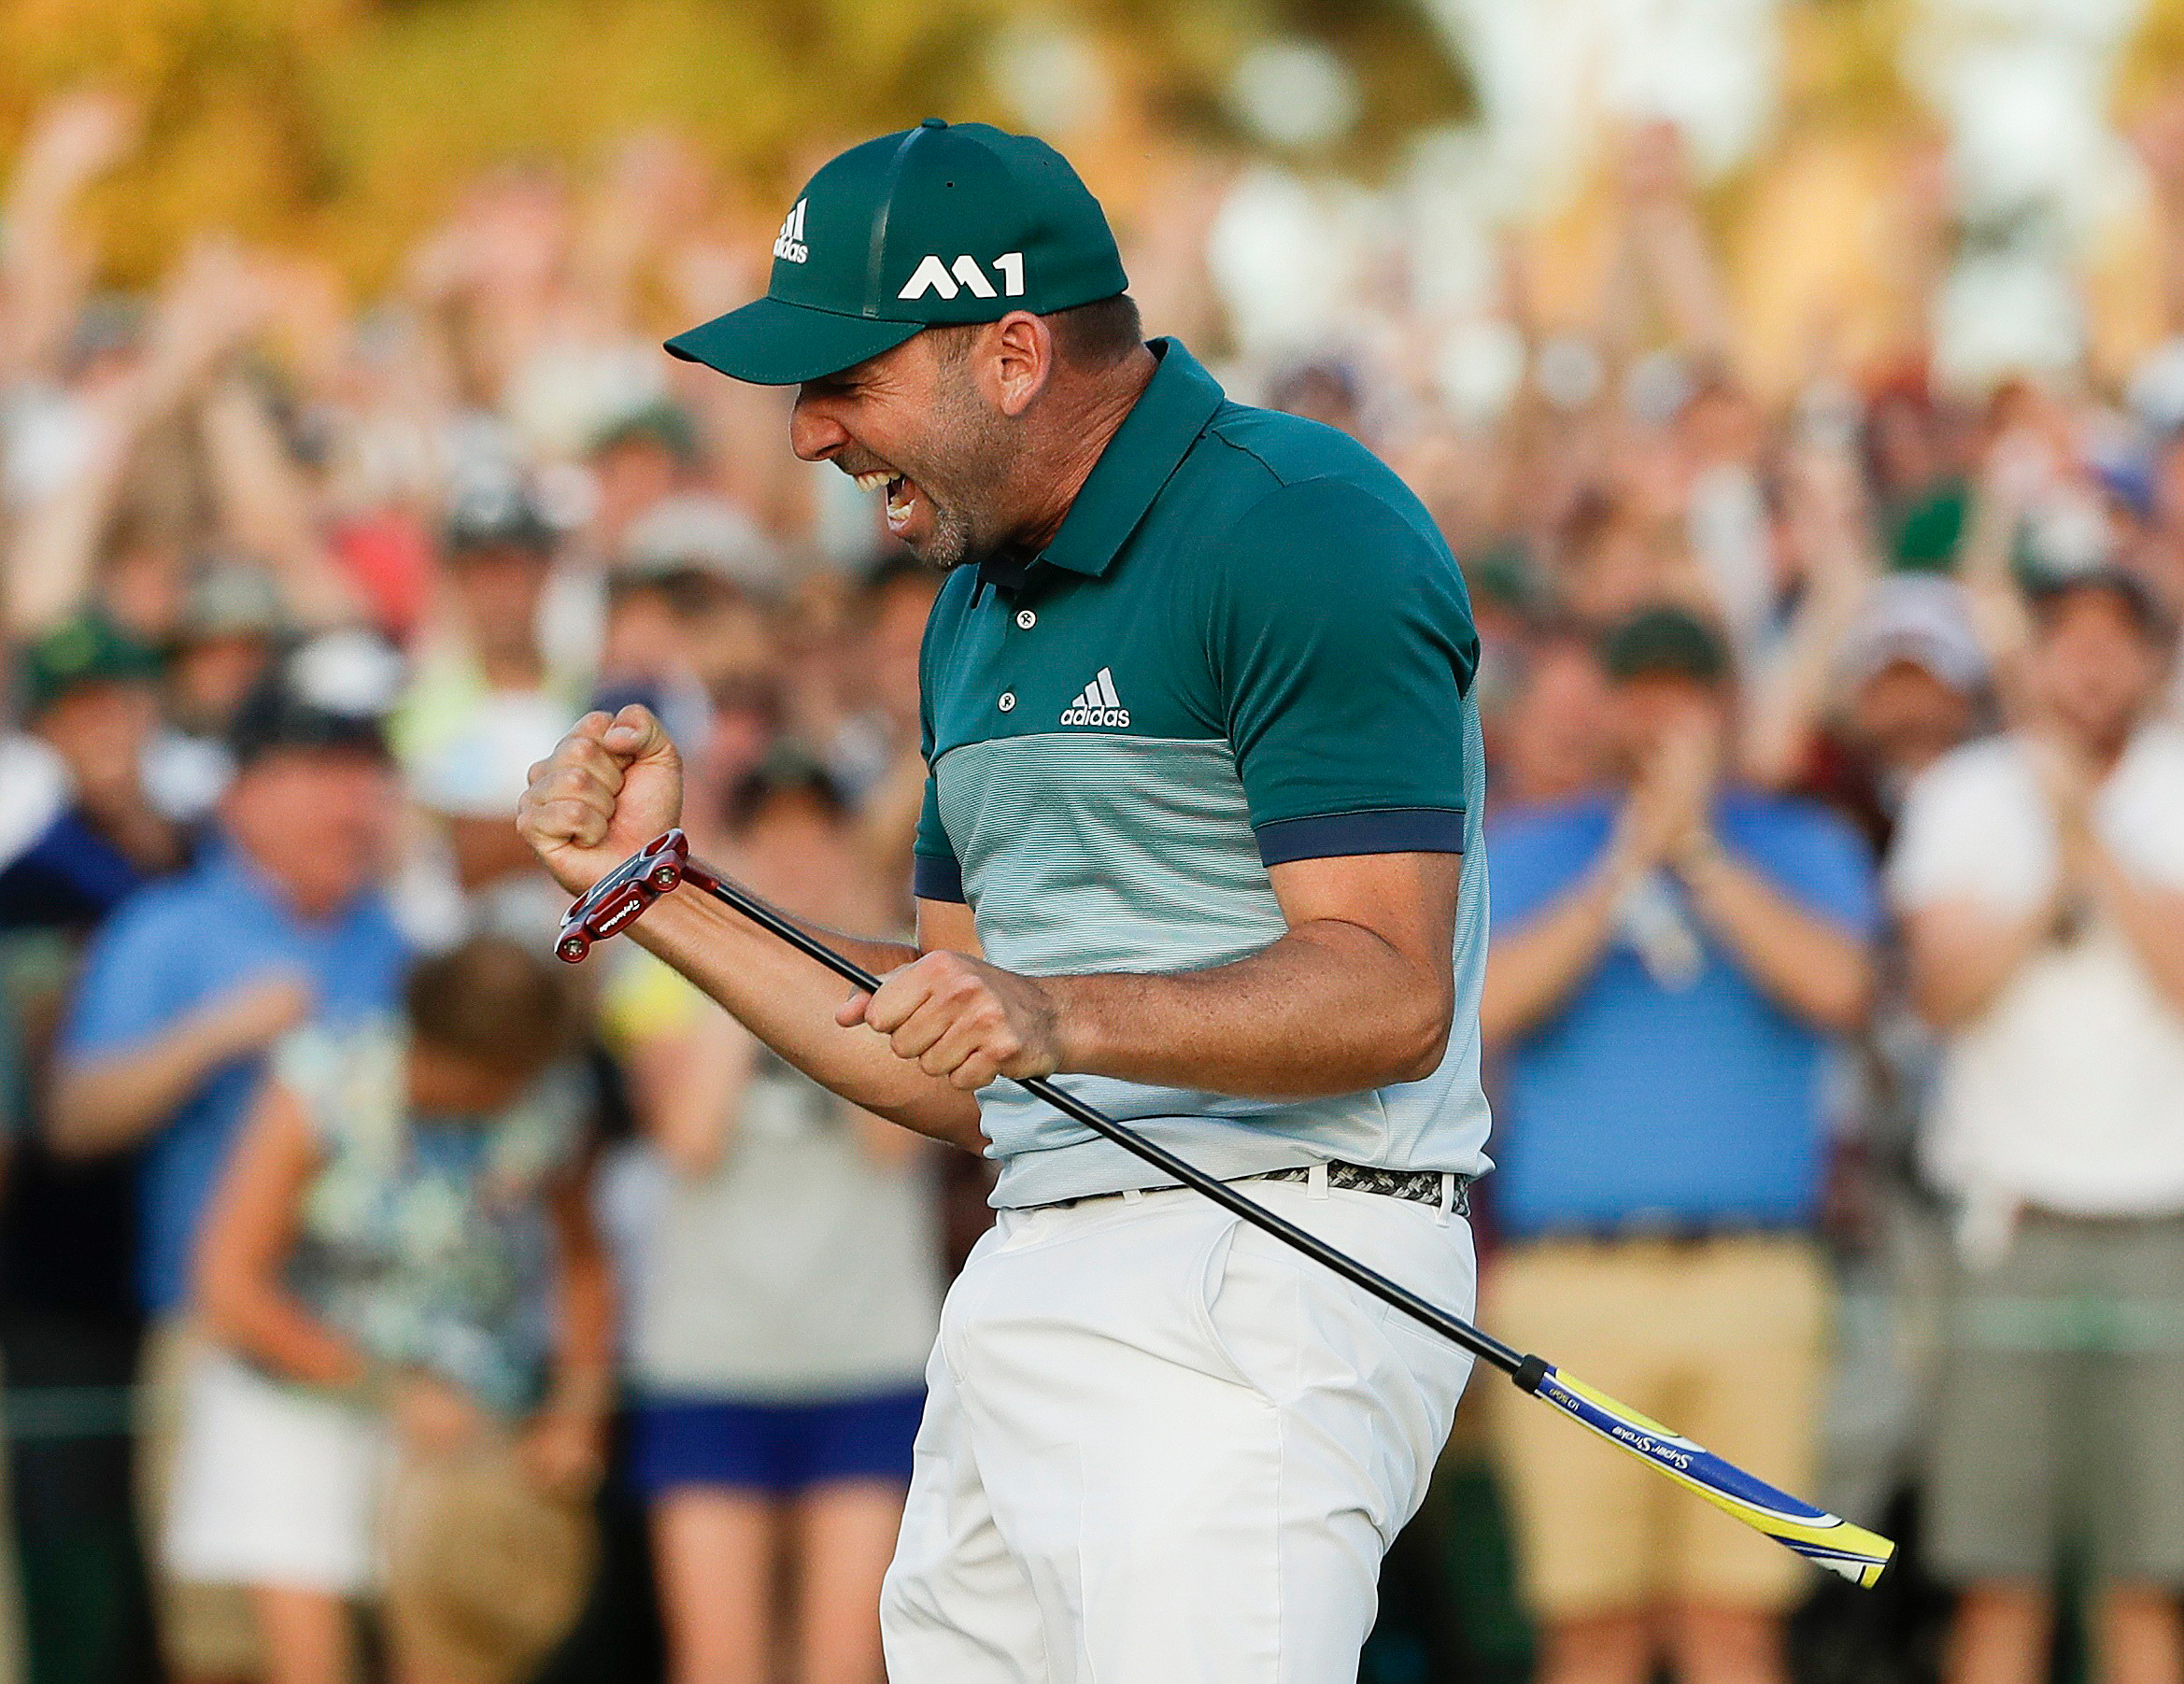 Sergio Garcia, of Spain, reacts after making his birdie putt on the 18th green to win the Masters golf tournament after a playoff on April 9, 2017, in Augusta.